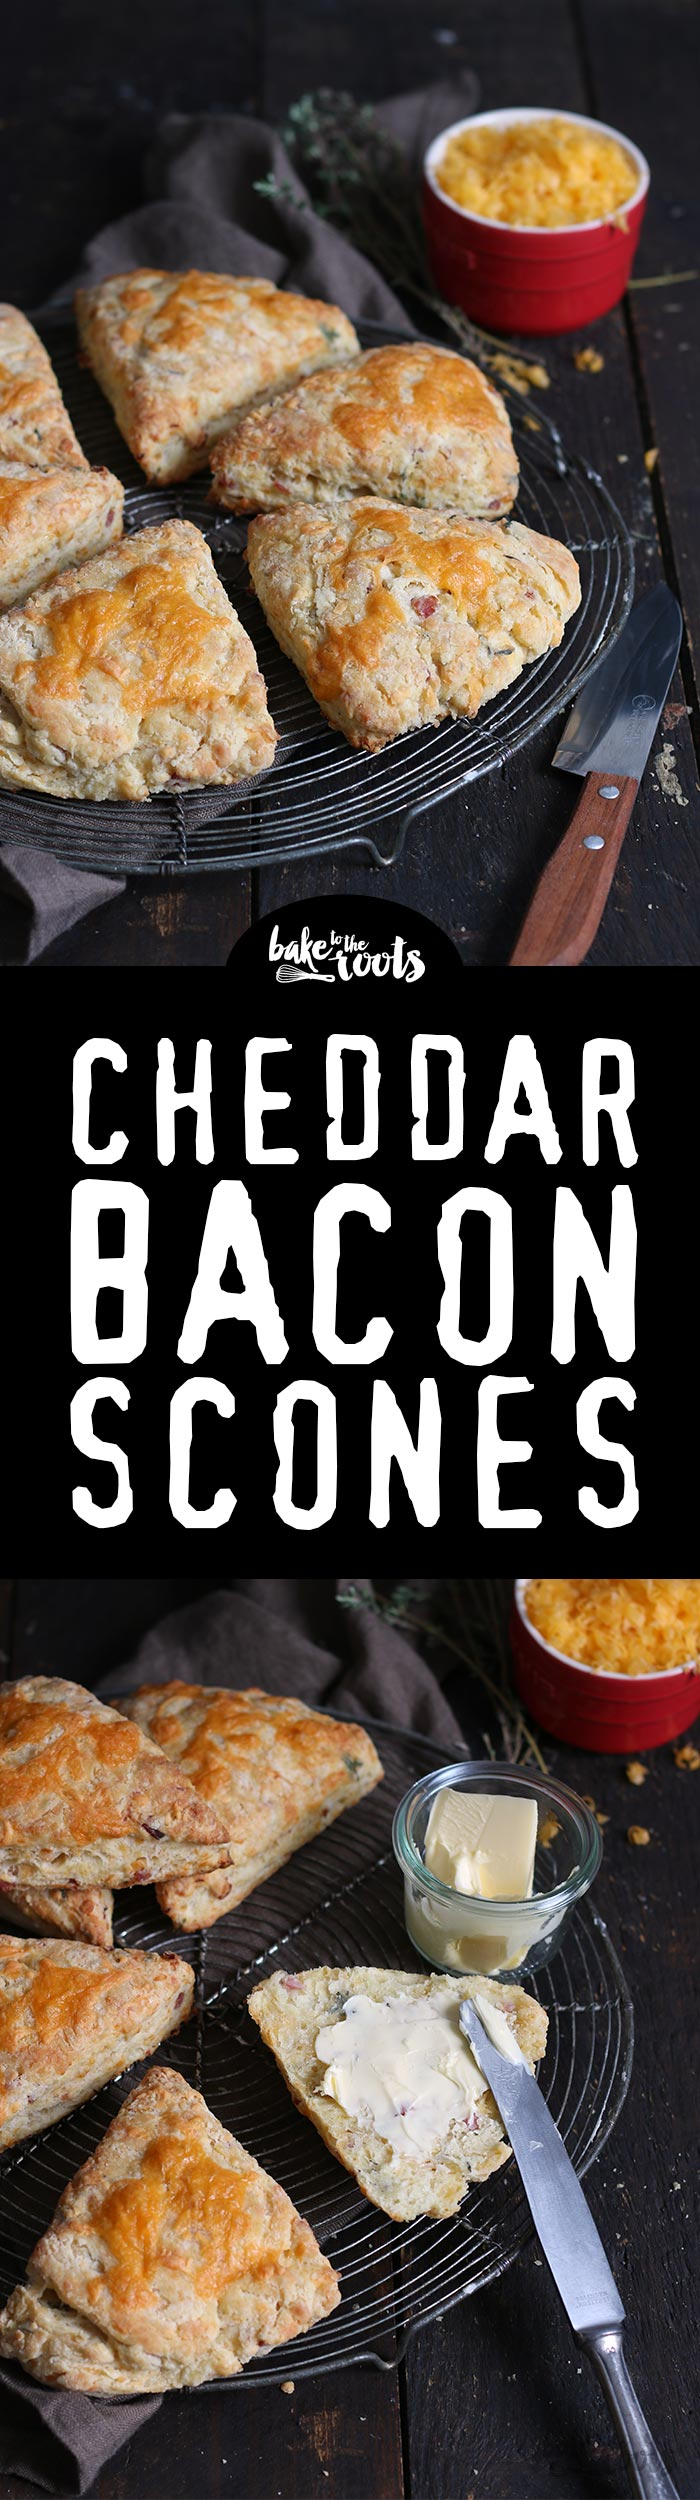 Delicious Scones with Cheddar Cheese, Bacon and Fresh Thyme | Bake to the roots